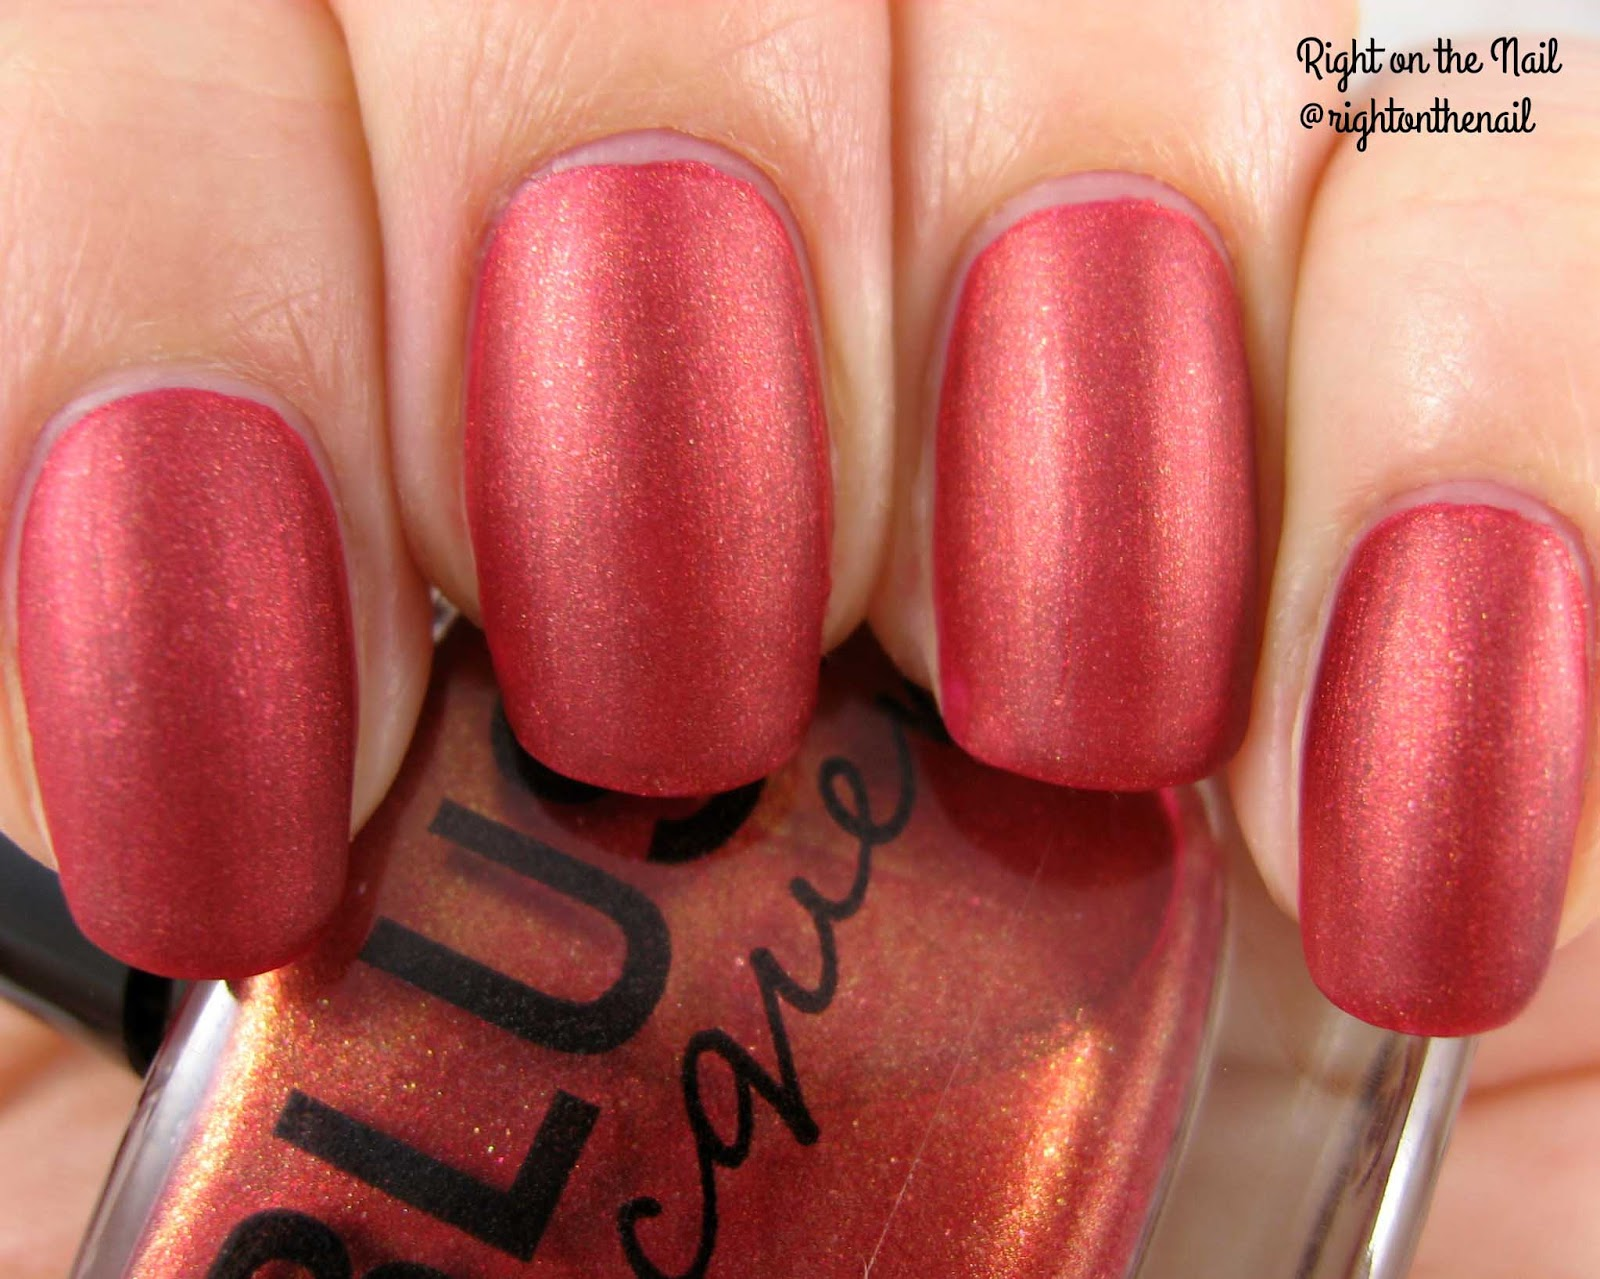 Right on the Nail: Nibs & Nails Presents the BLUSH Lacquers Polish ...